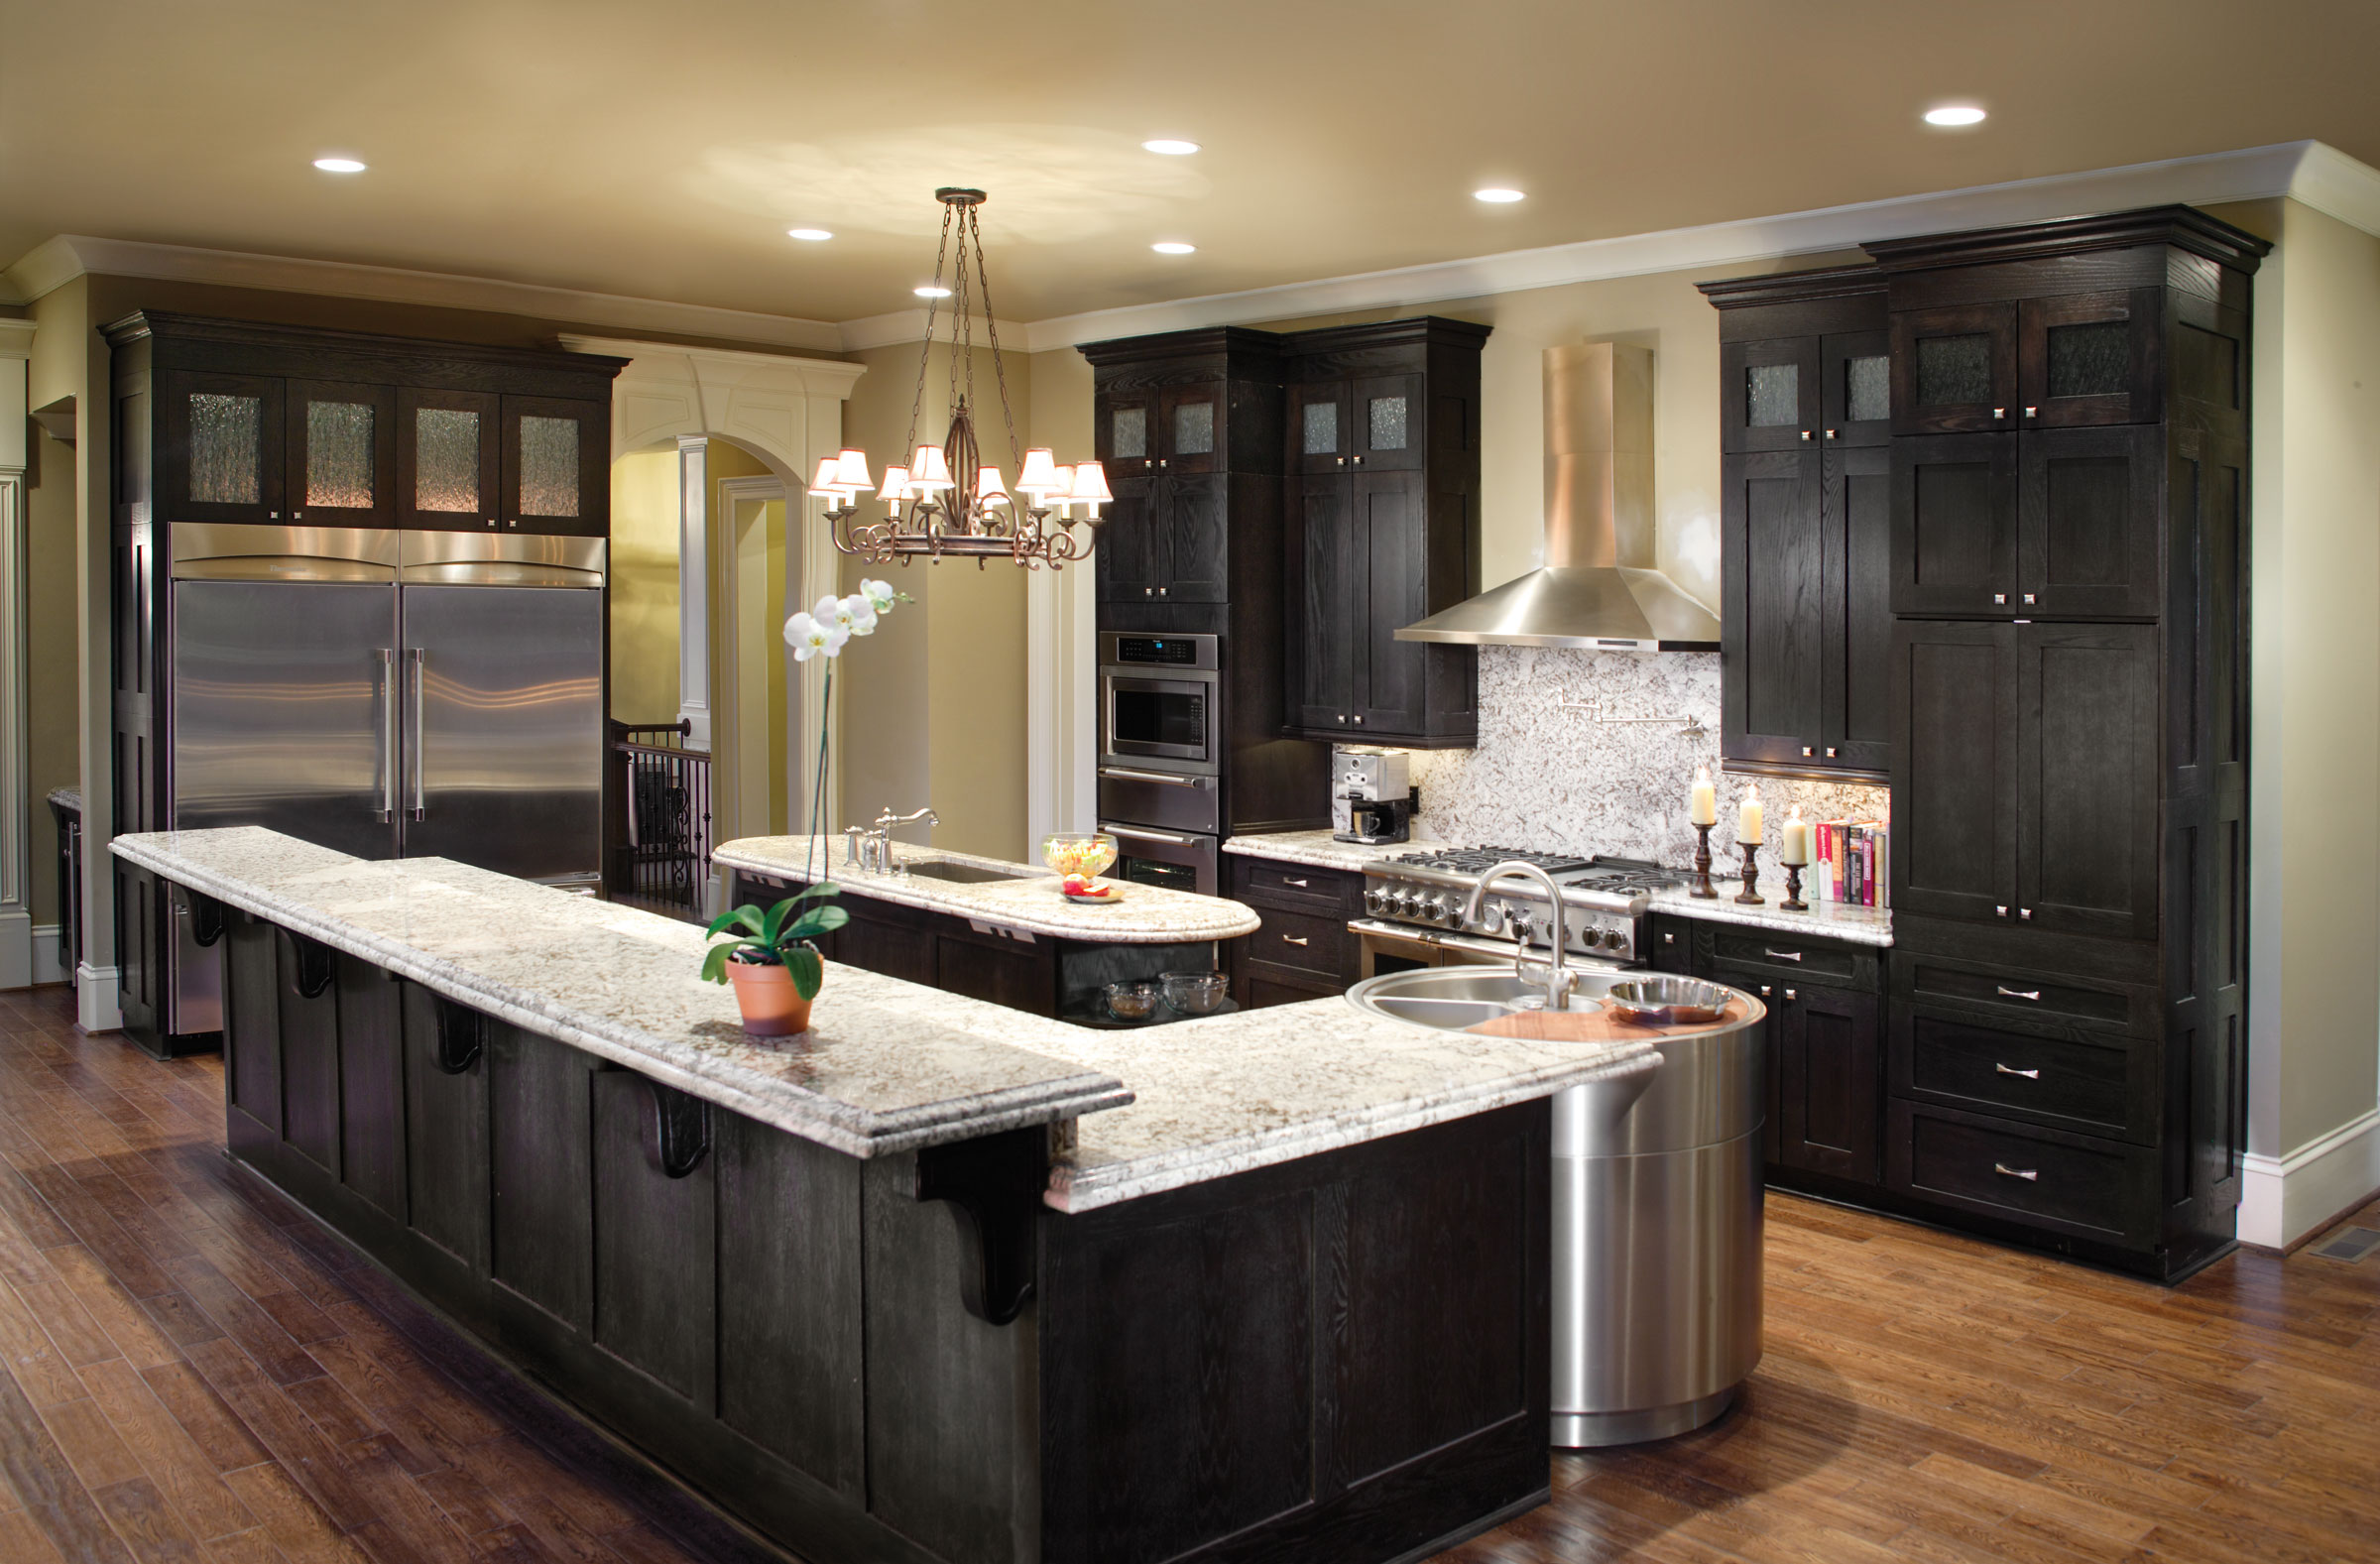 Custom bathroom kitchen cabinets phoenix cabinets by for Kitchens by design